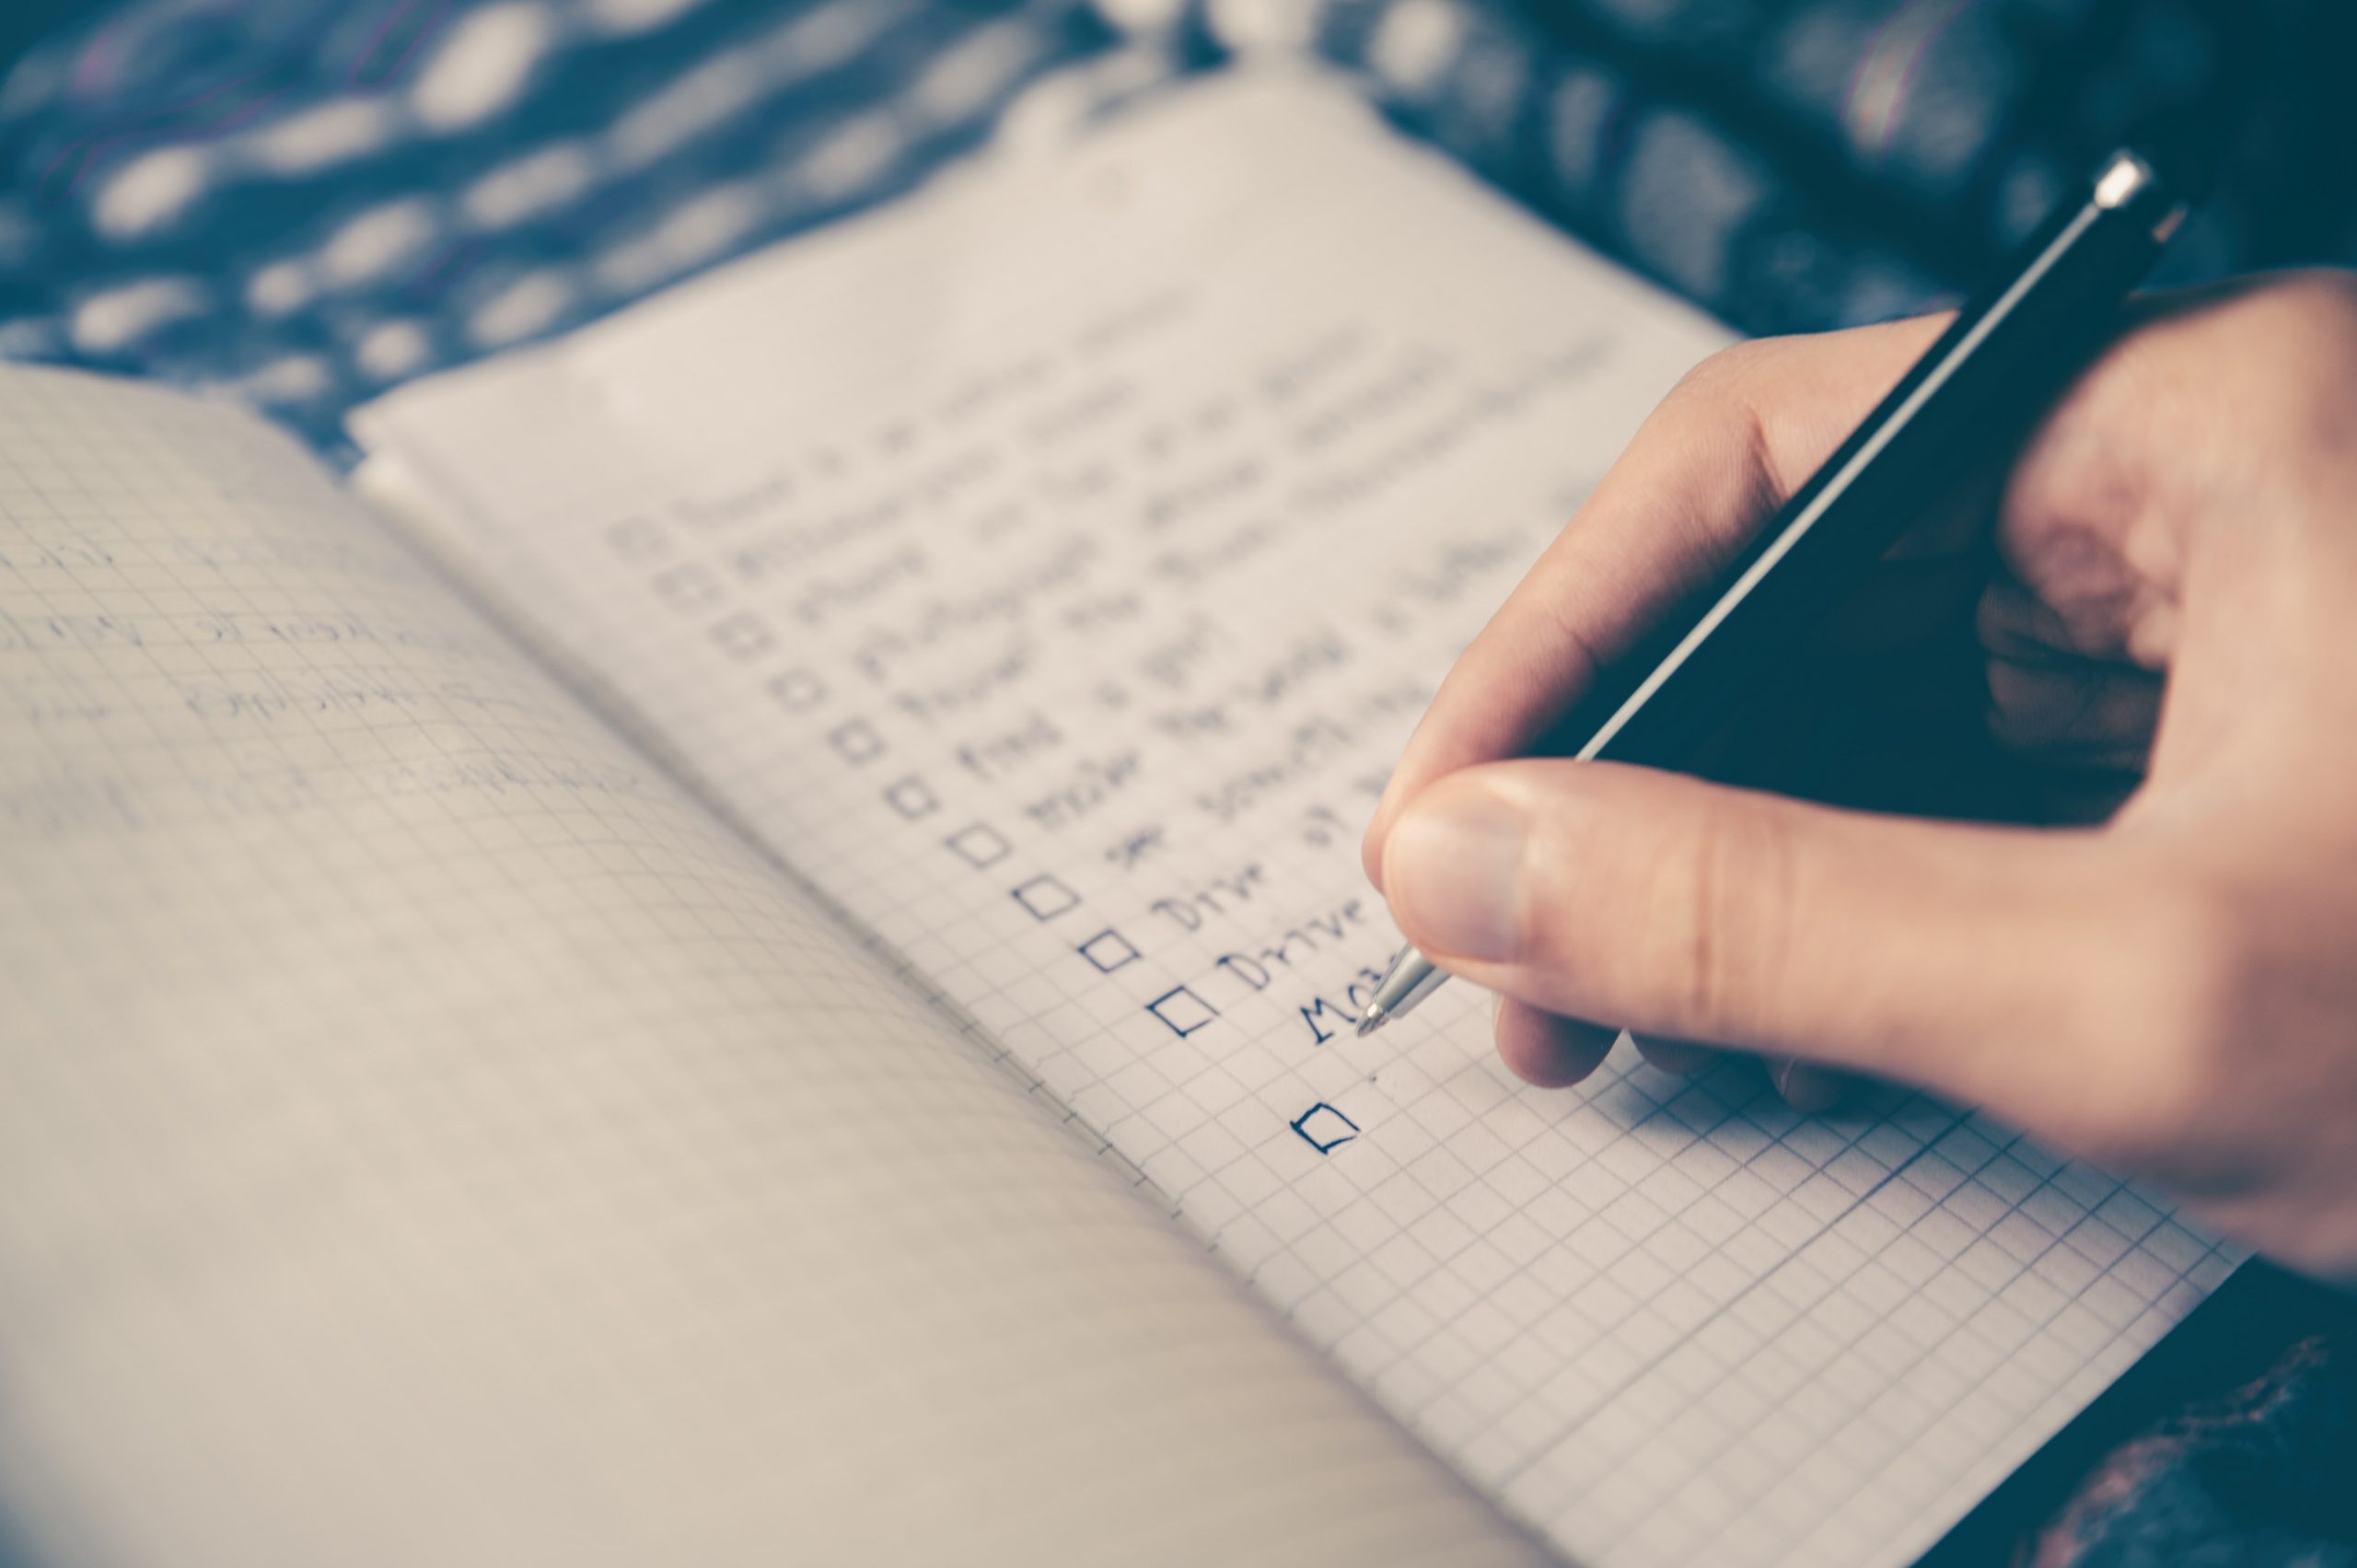 It's OK to put down your to-do list